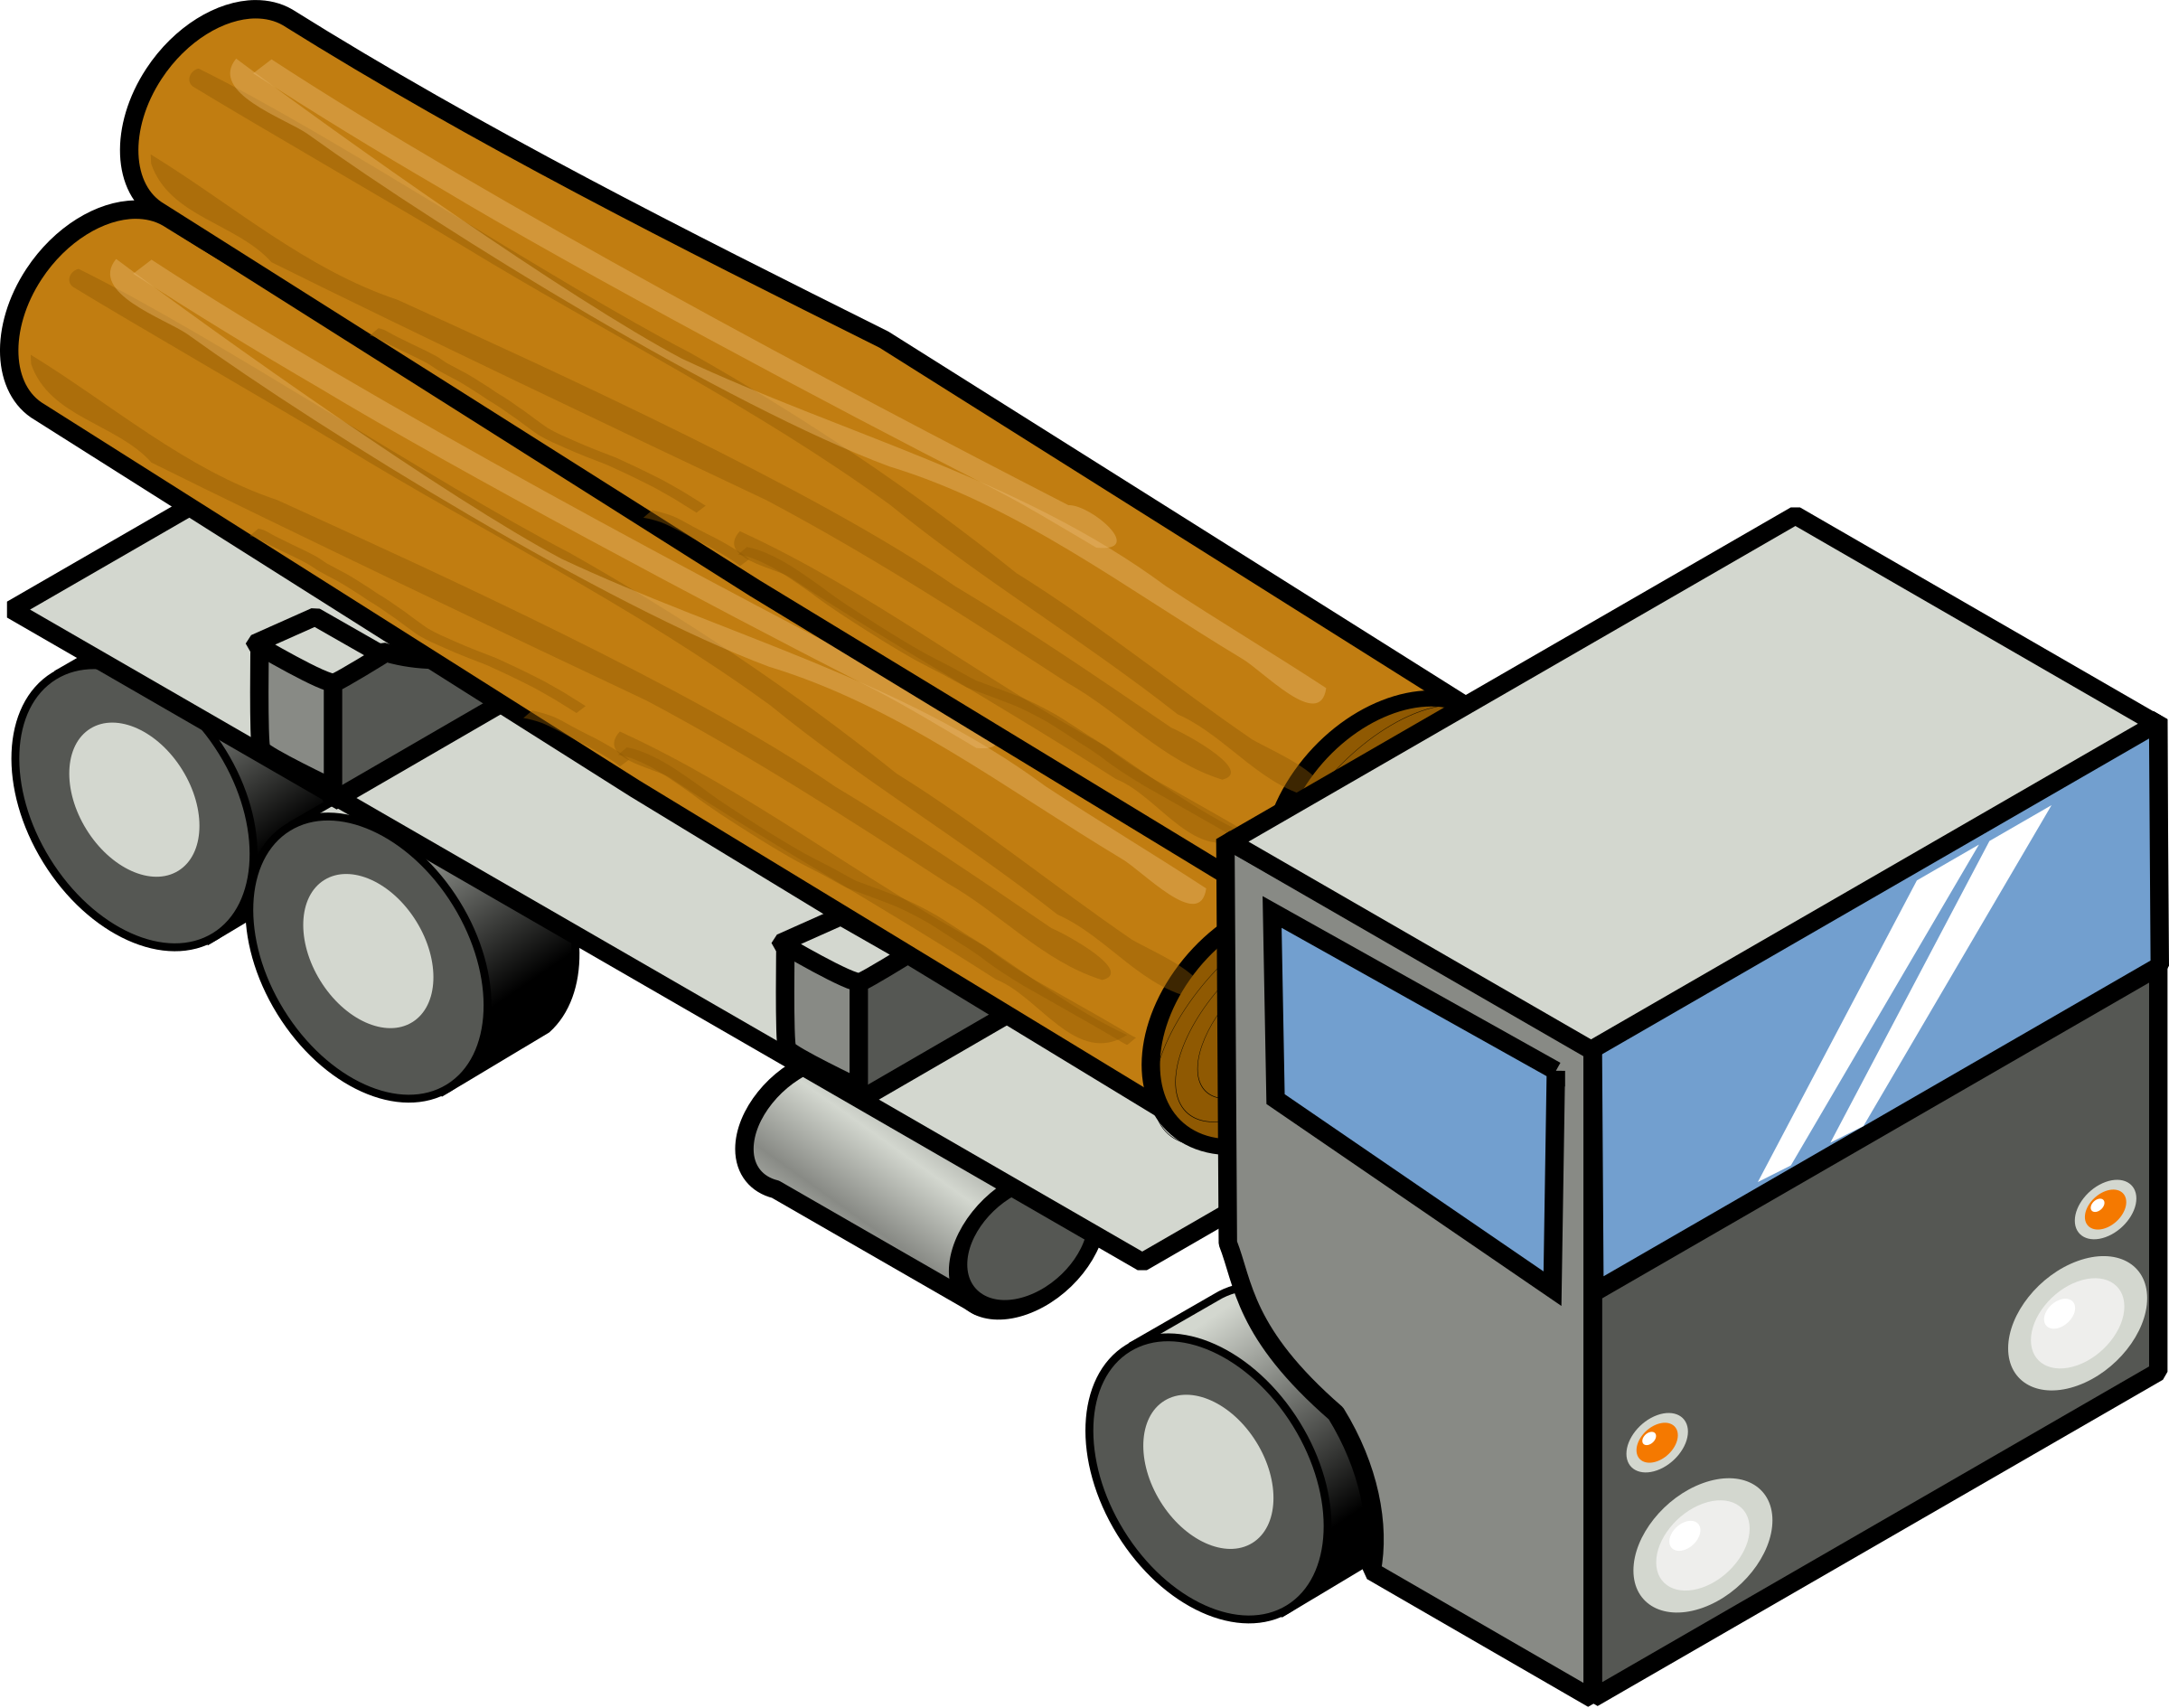 van transportation signs. Milk clipart lorry